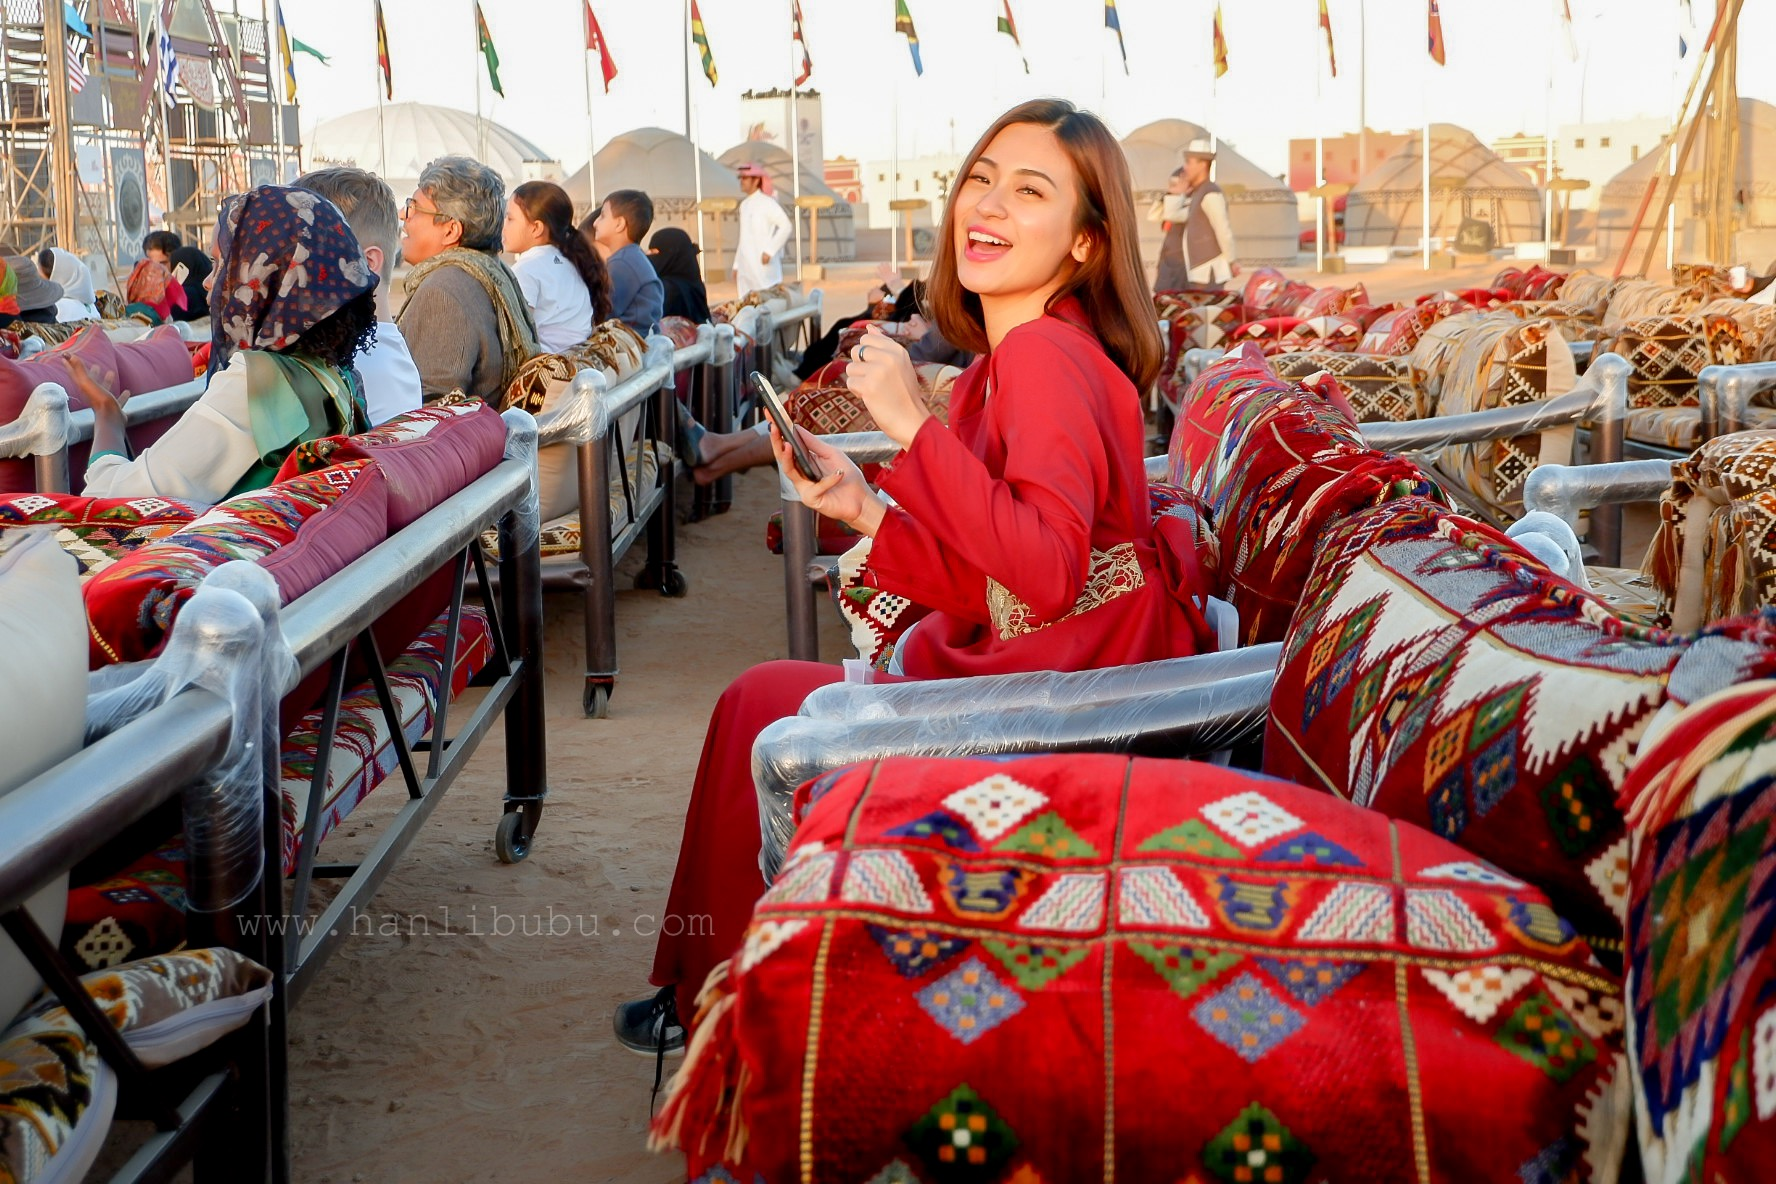 IMG 3772 - King Abdulaziz Camel Festival: Incredibly Eye-Opening World Nomad Games in Riyadh, Saudi Arabia | Celebrated by 90 over different countries.